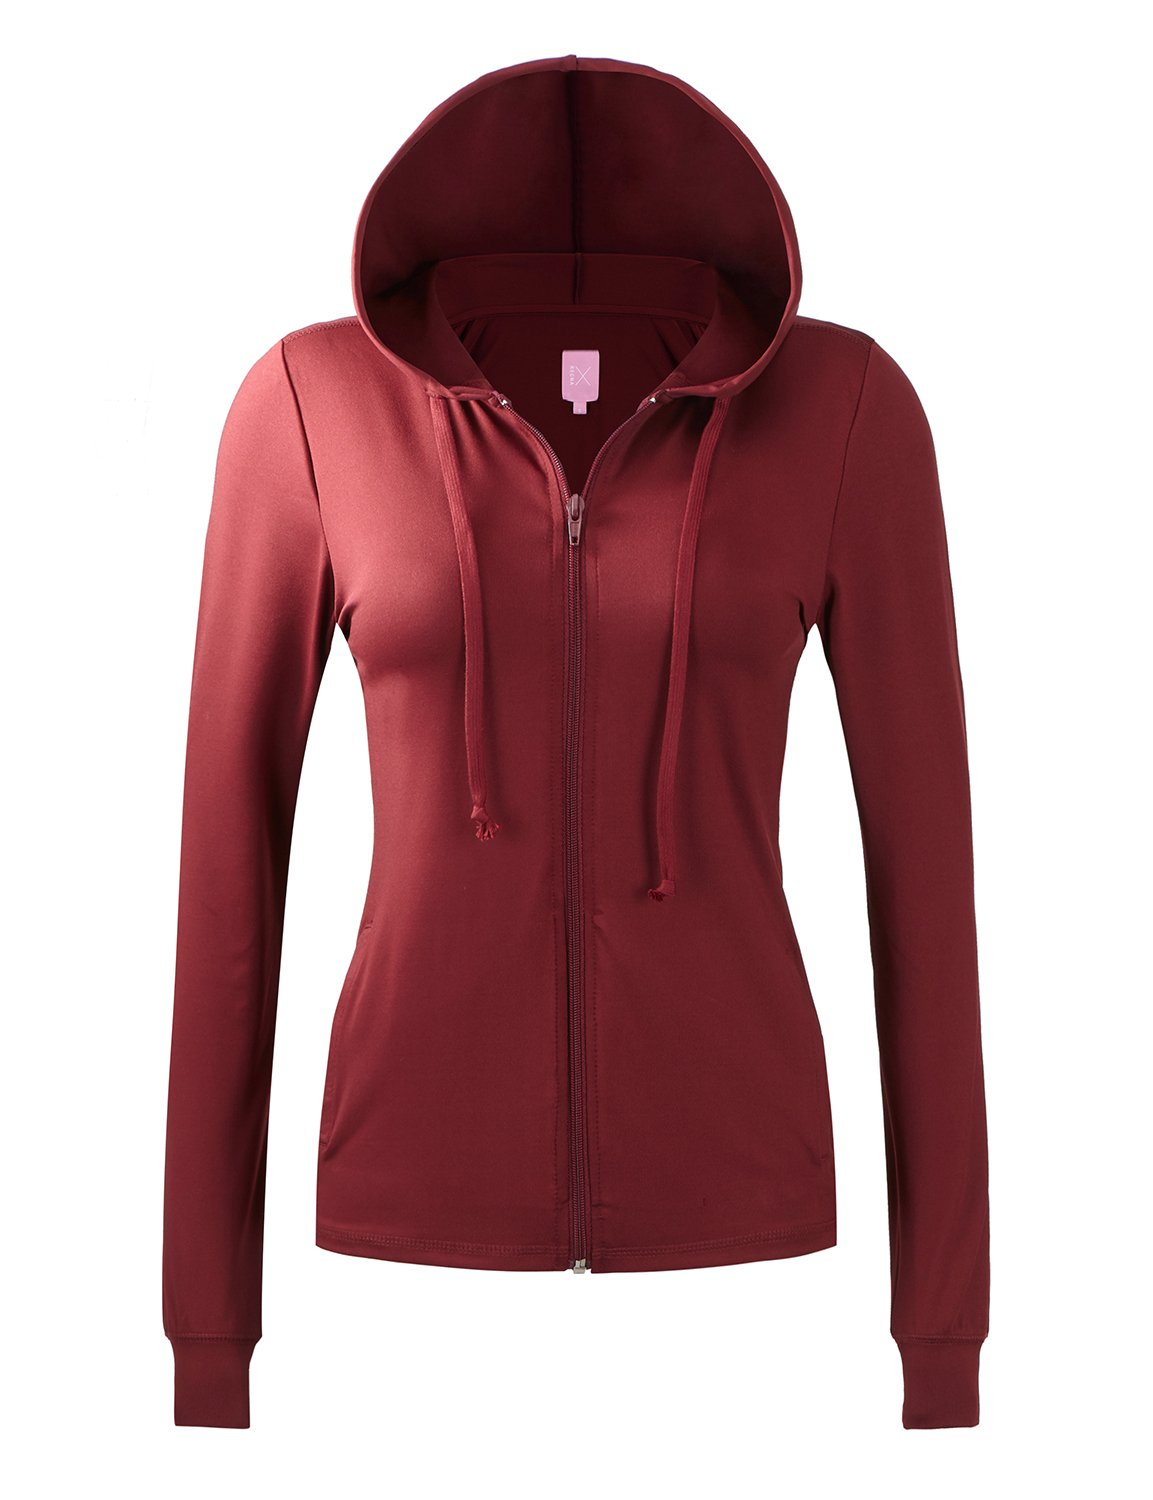 Regna X No Bother Womens Lightweight Performance Full Zip up Hoodie Jacket